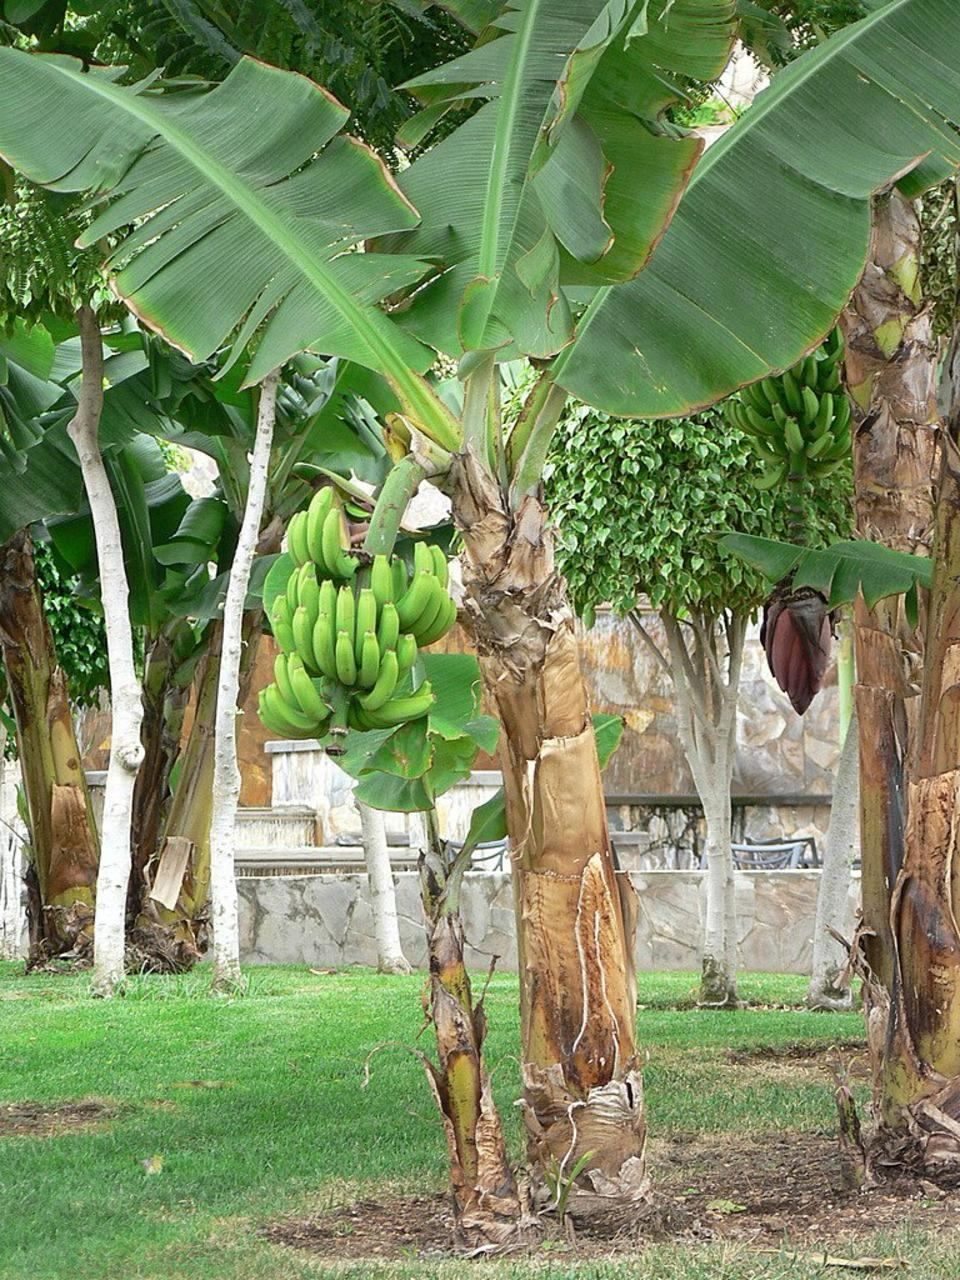 file banana tree with green wikimedia commons. Black Bedroom Furniture Sets. Home Design Ideas